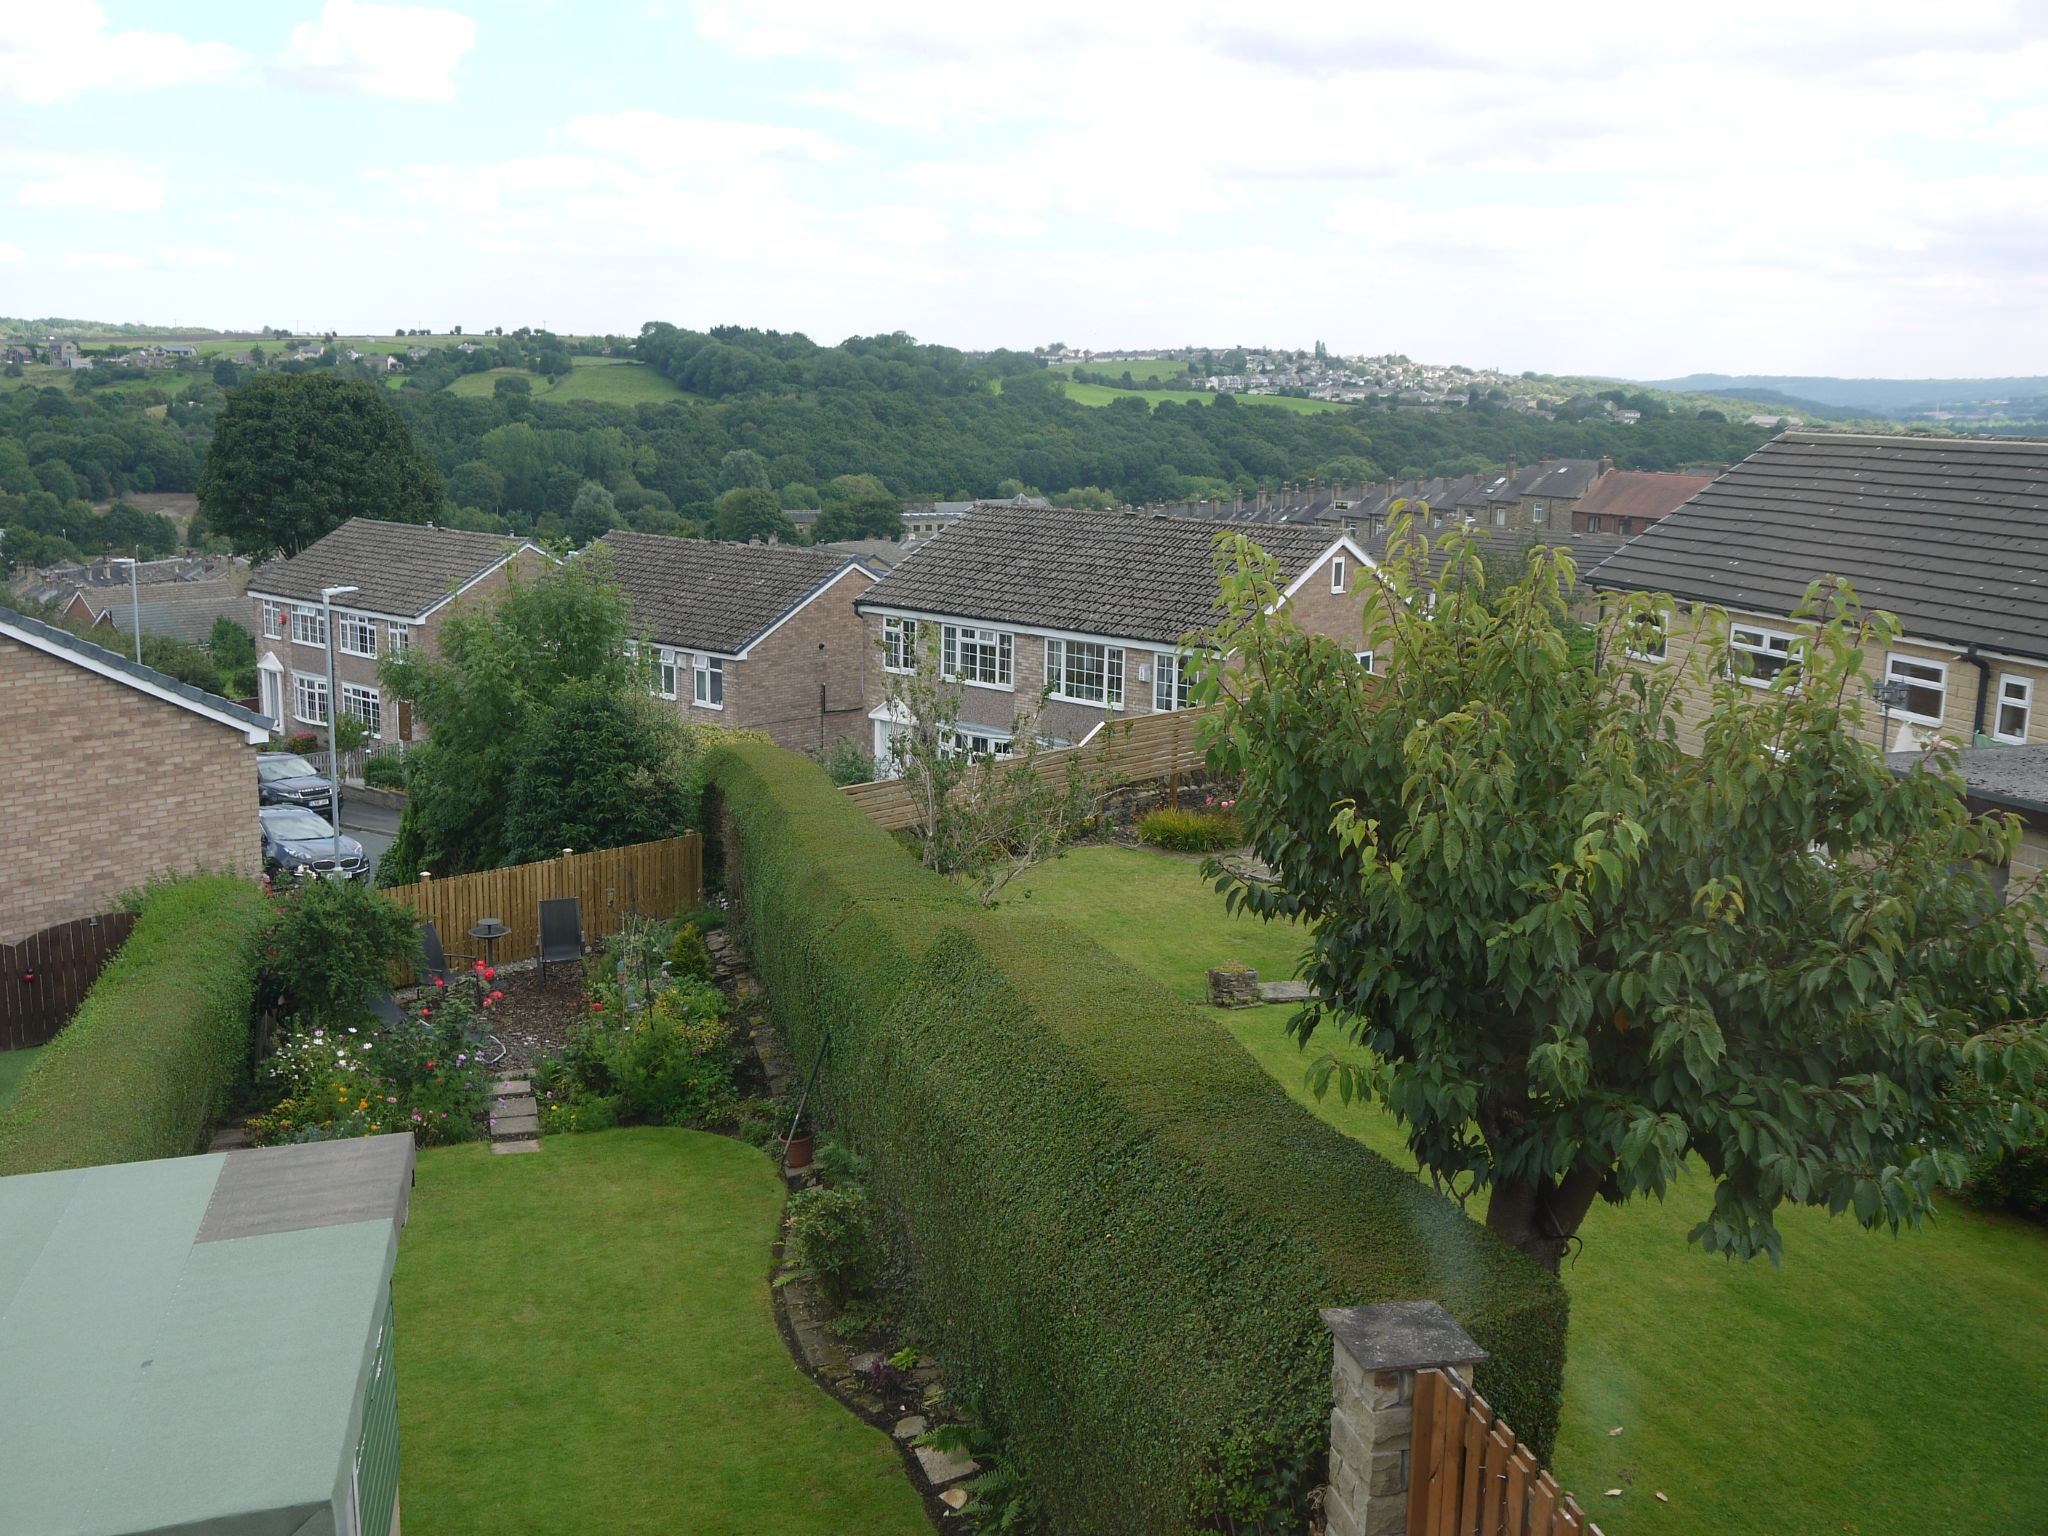 3 bedroom semi-detached house SSTC in Calderdale - Photograph 6.